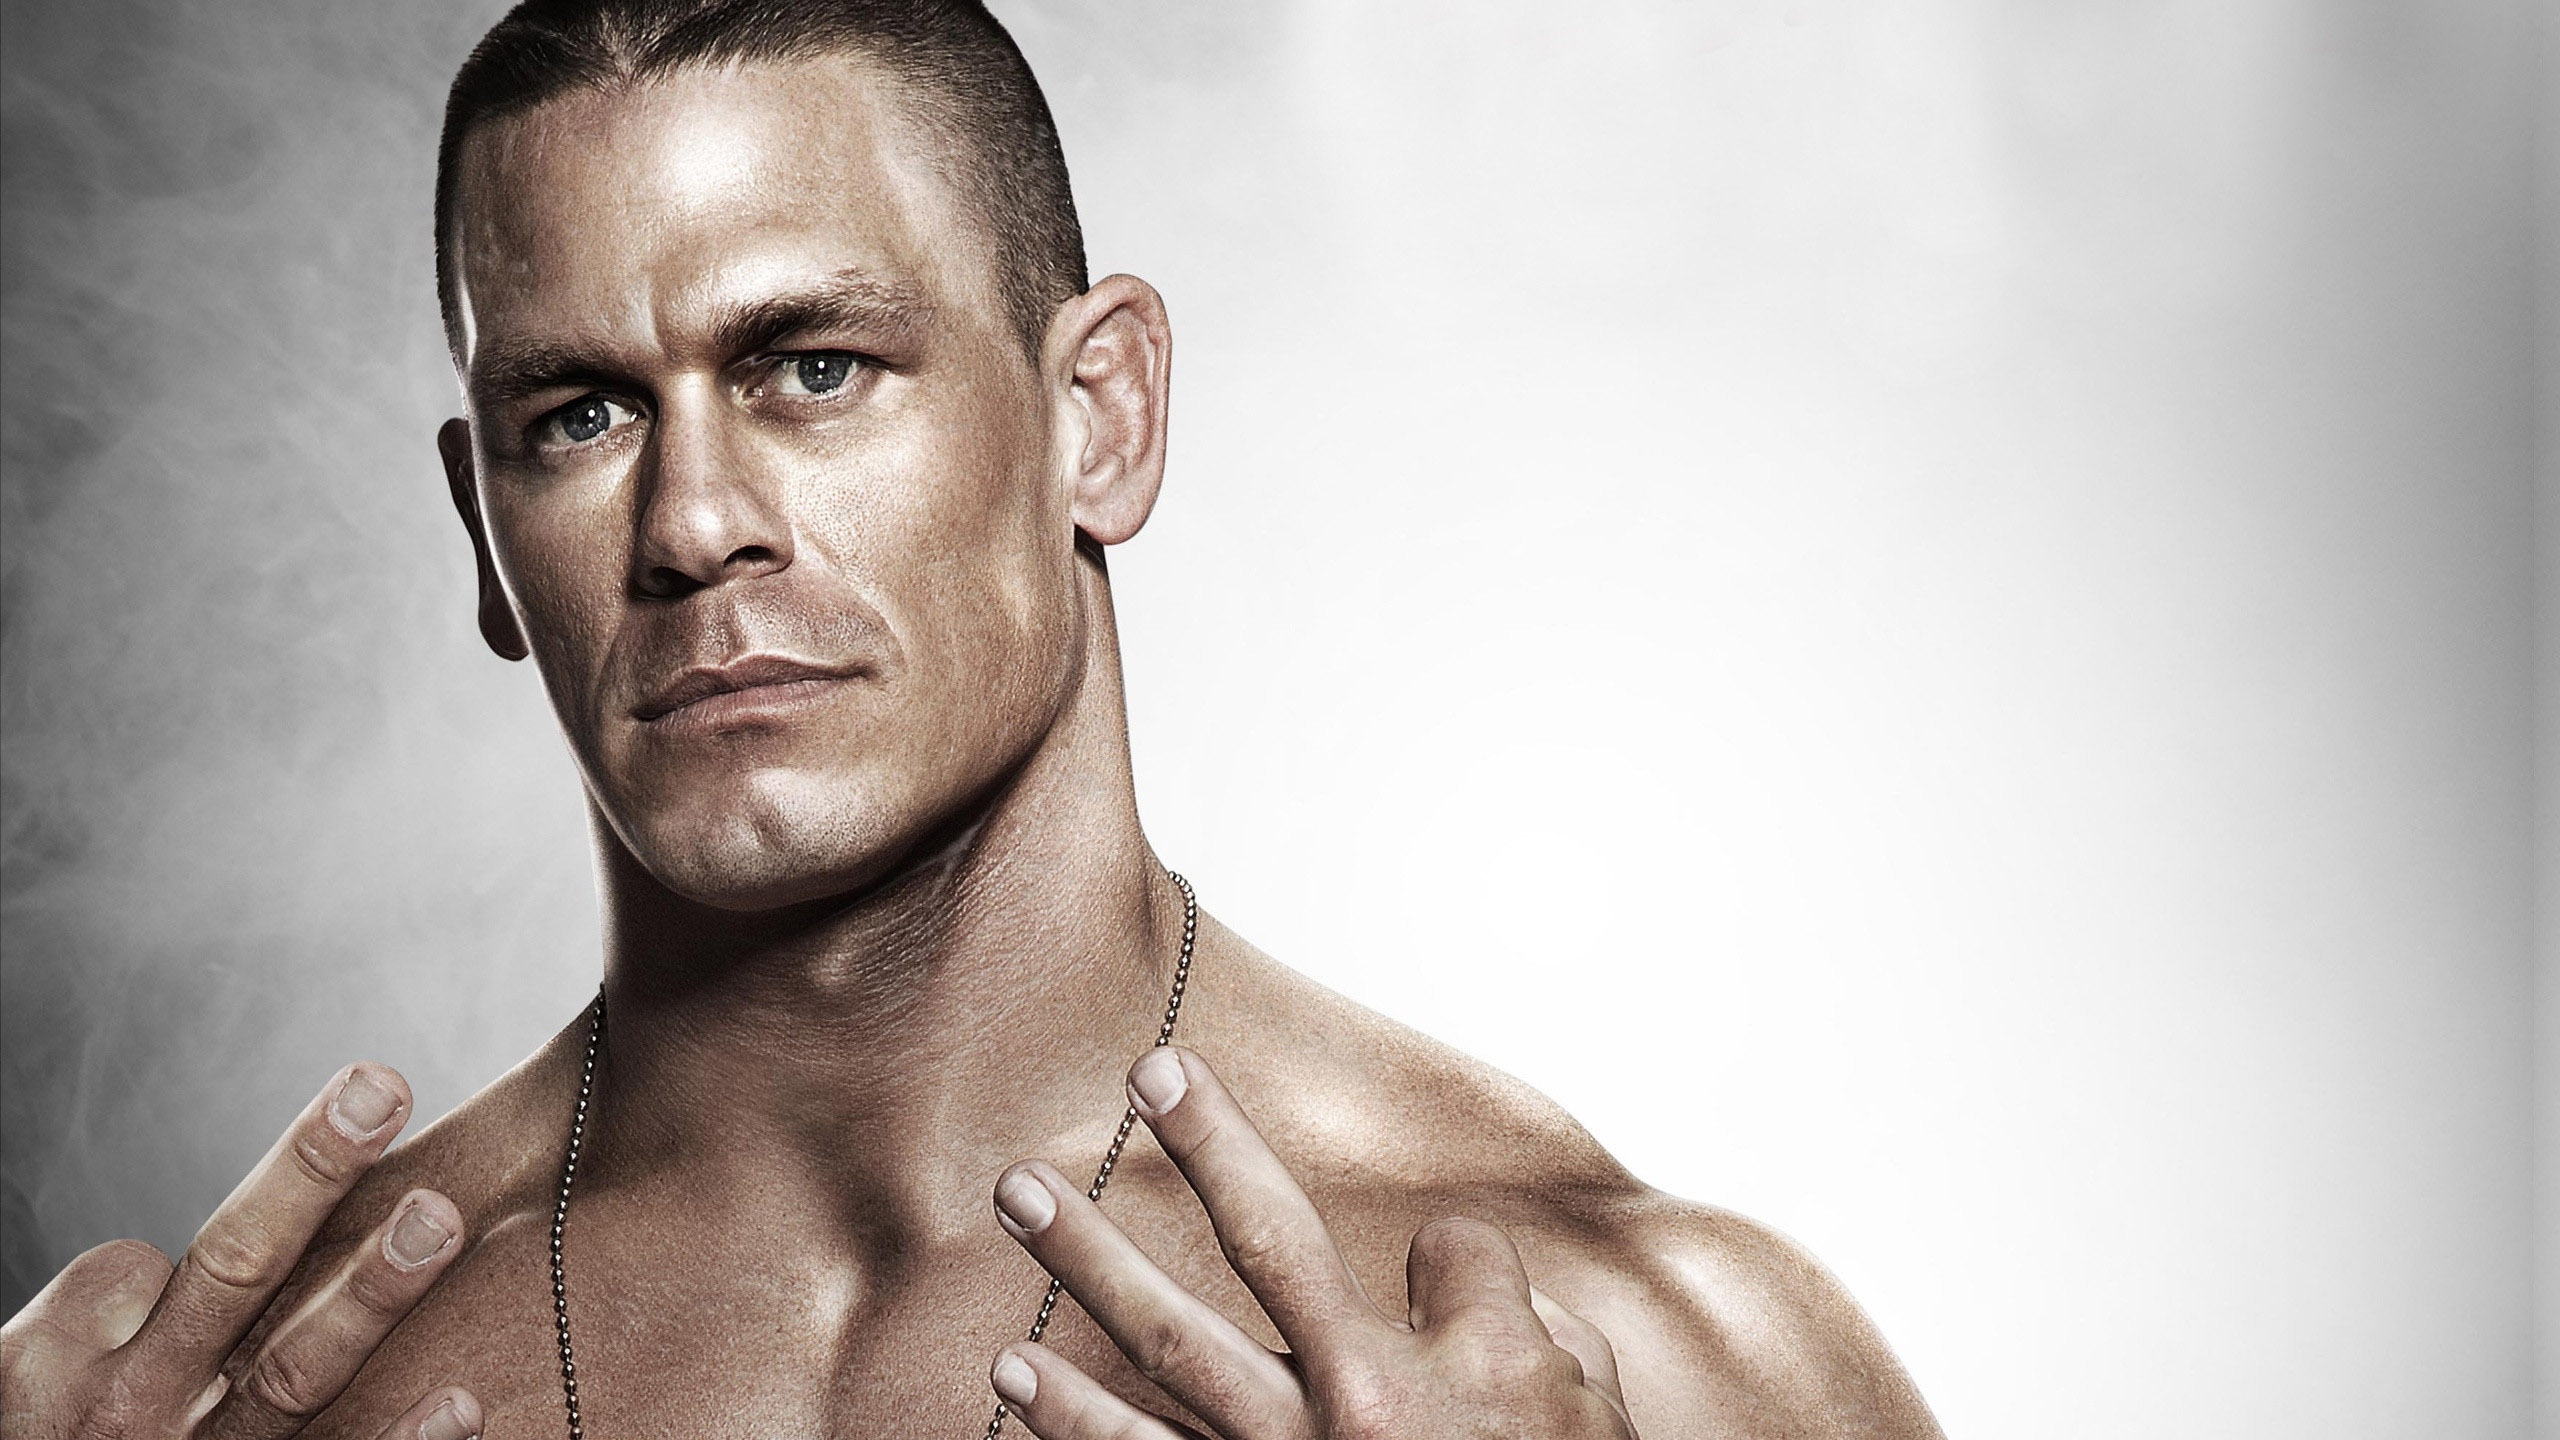 John-Cena-HD-Free-download-latest-John-Cena-HD-for-Computer-Mobile-iPhone-wallpaper-wp3407624